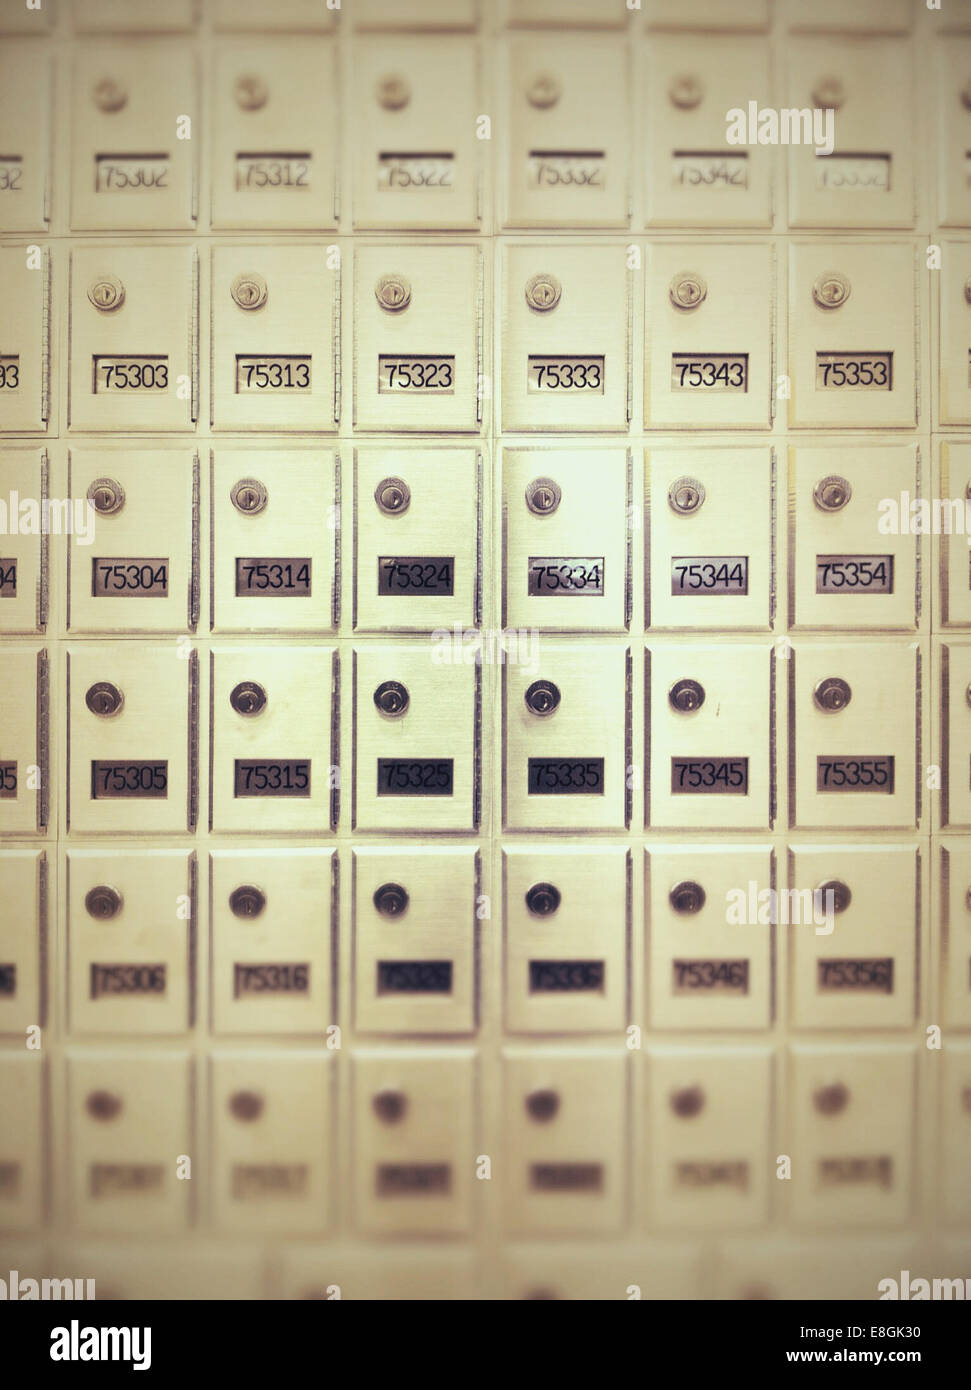 Post office mail boxes - Stock Image